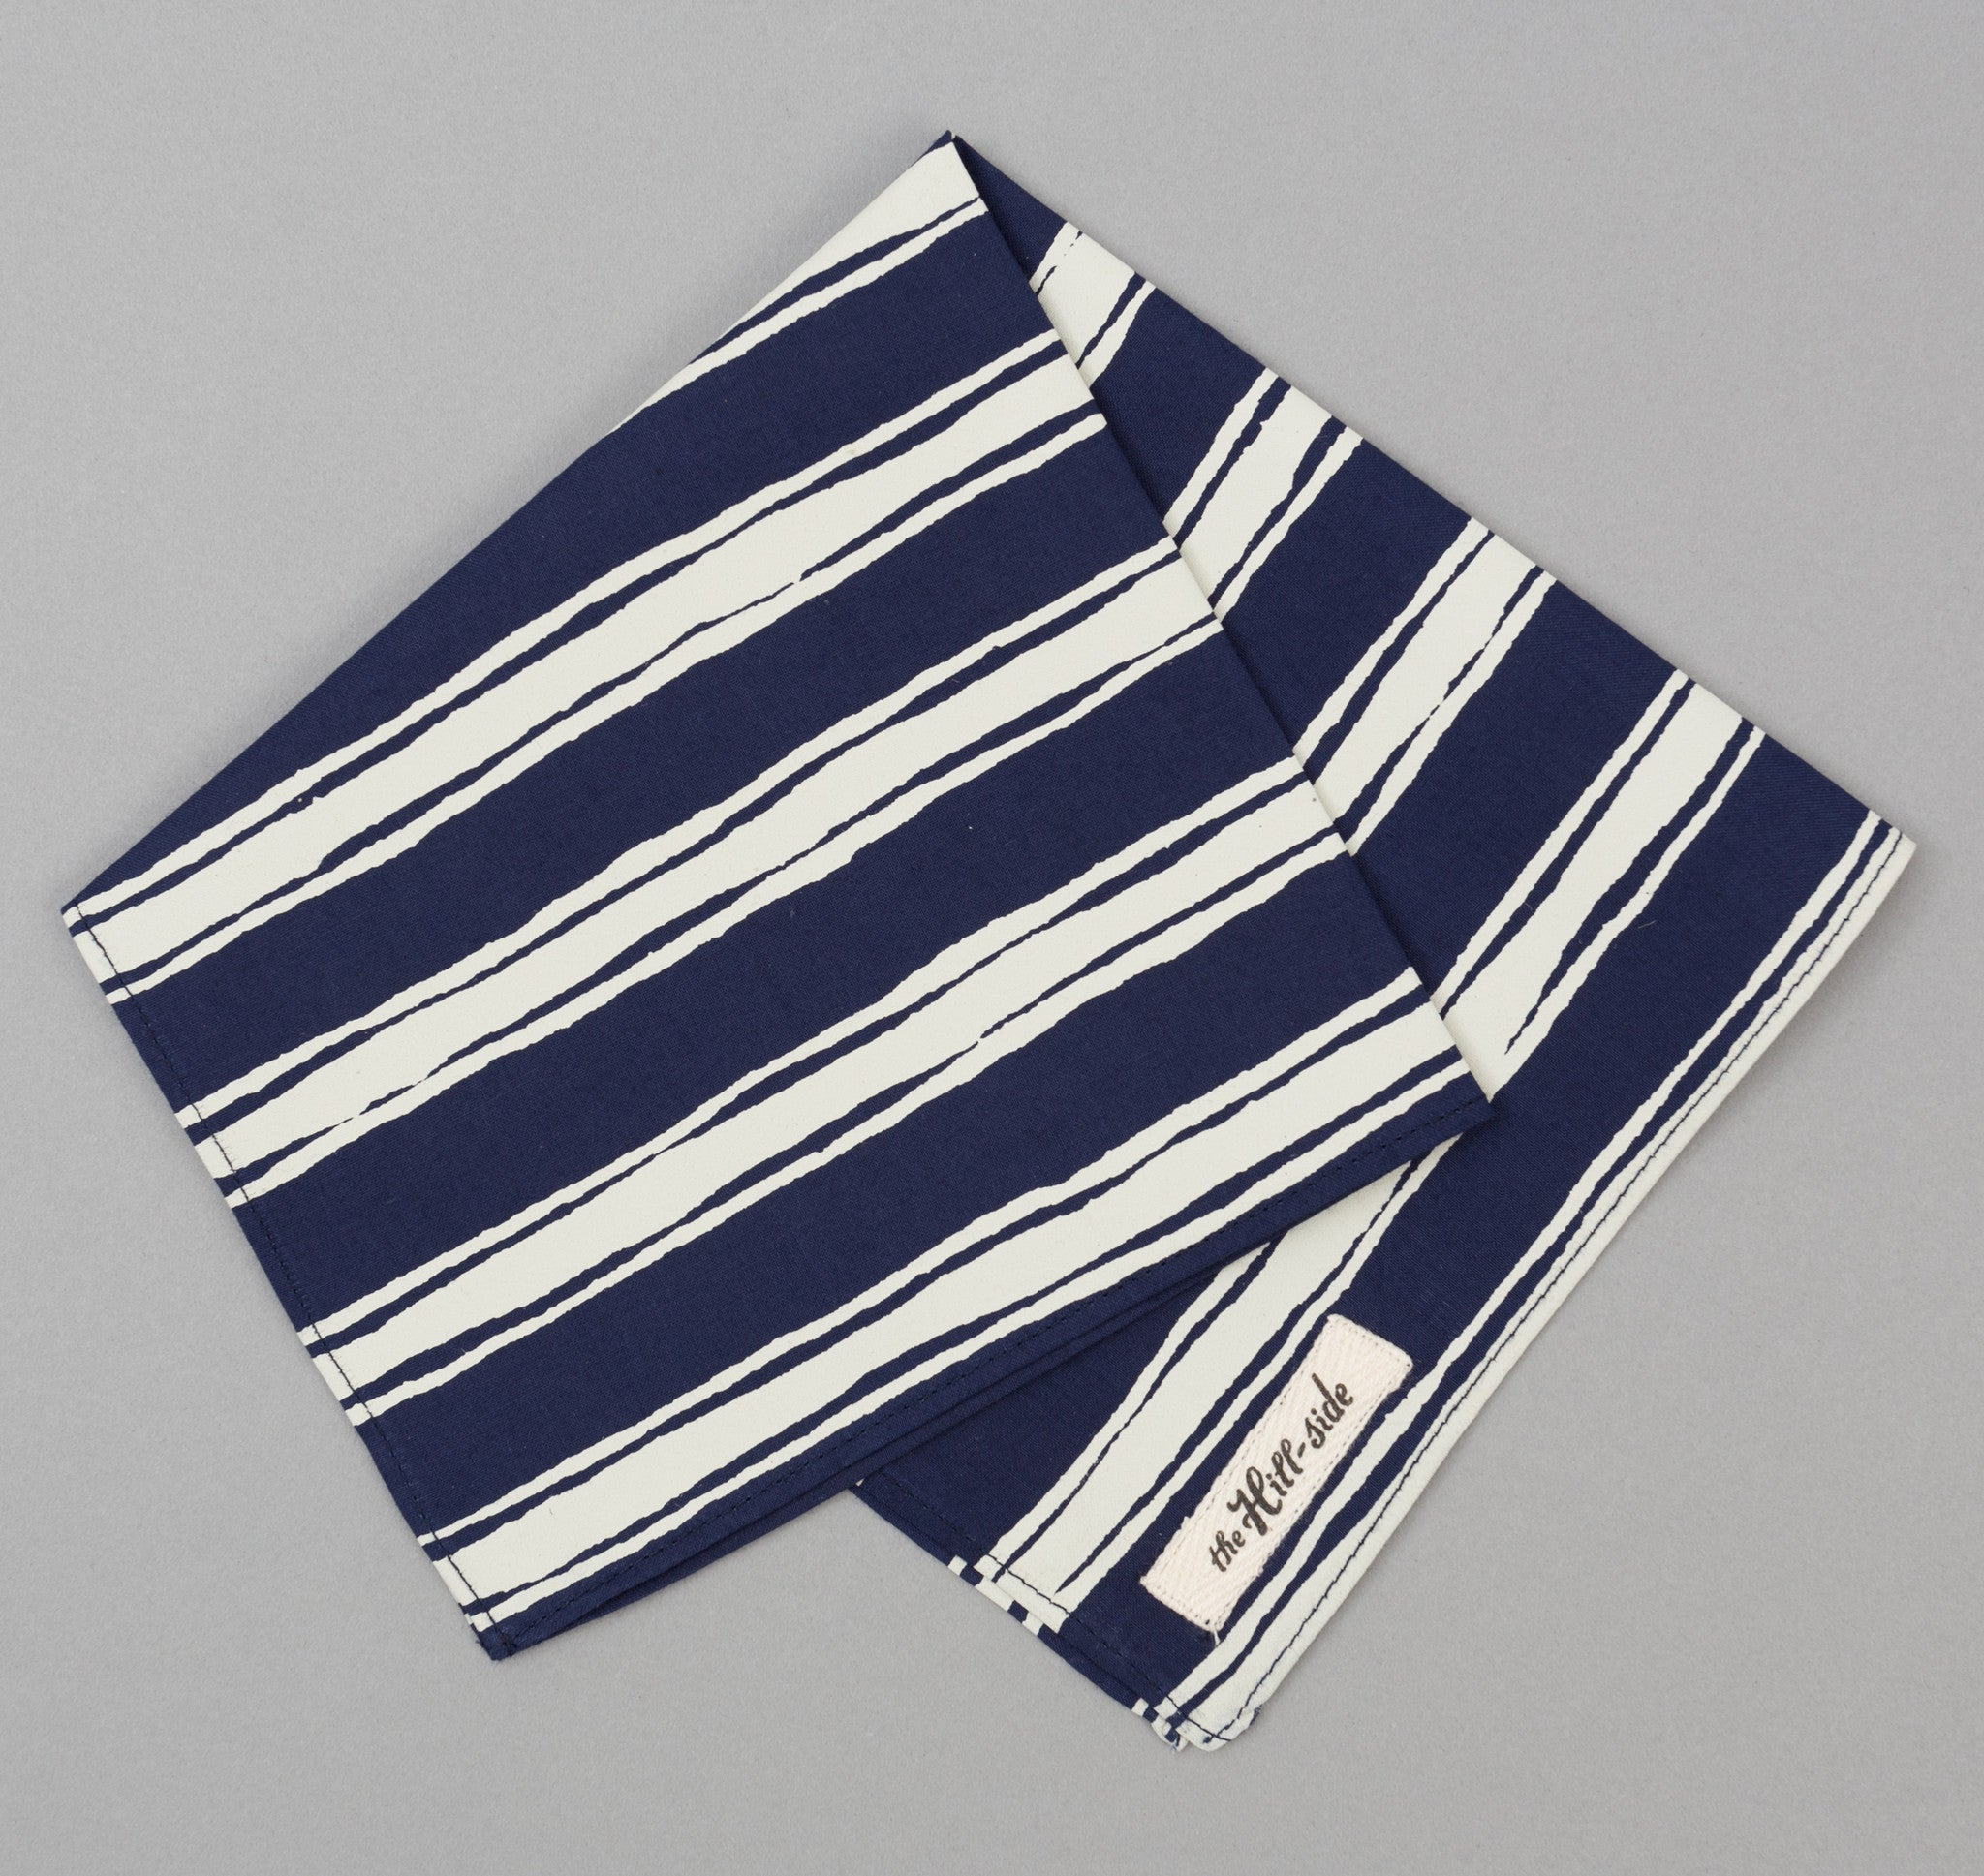 The Hill-Side - Endo Stripes Print Pocket Square, Navy - PS1-345 - image 1